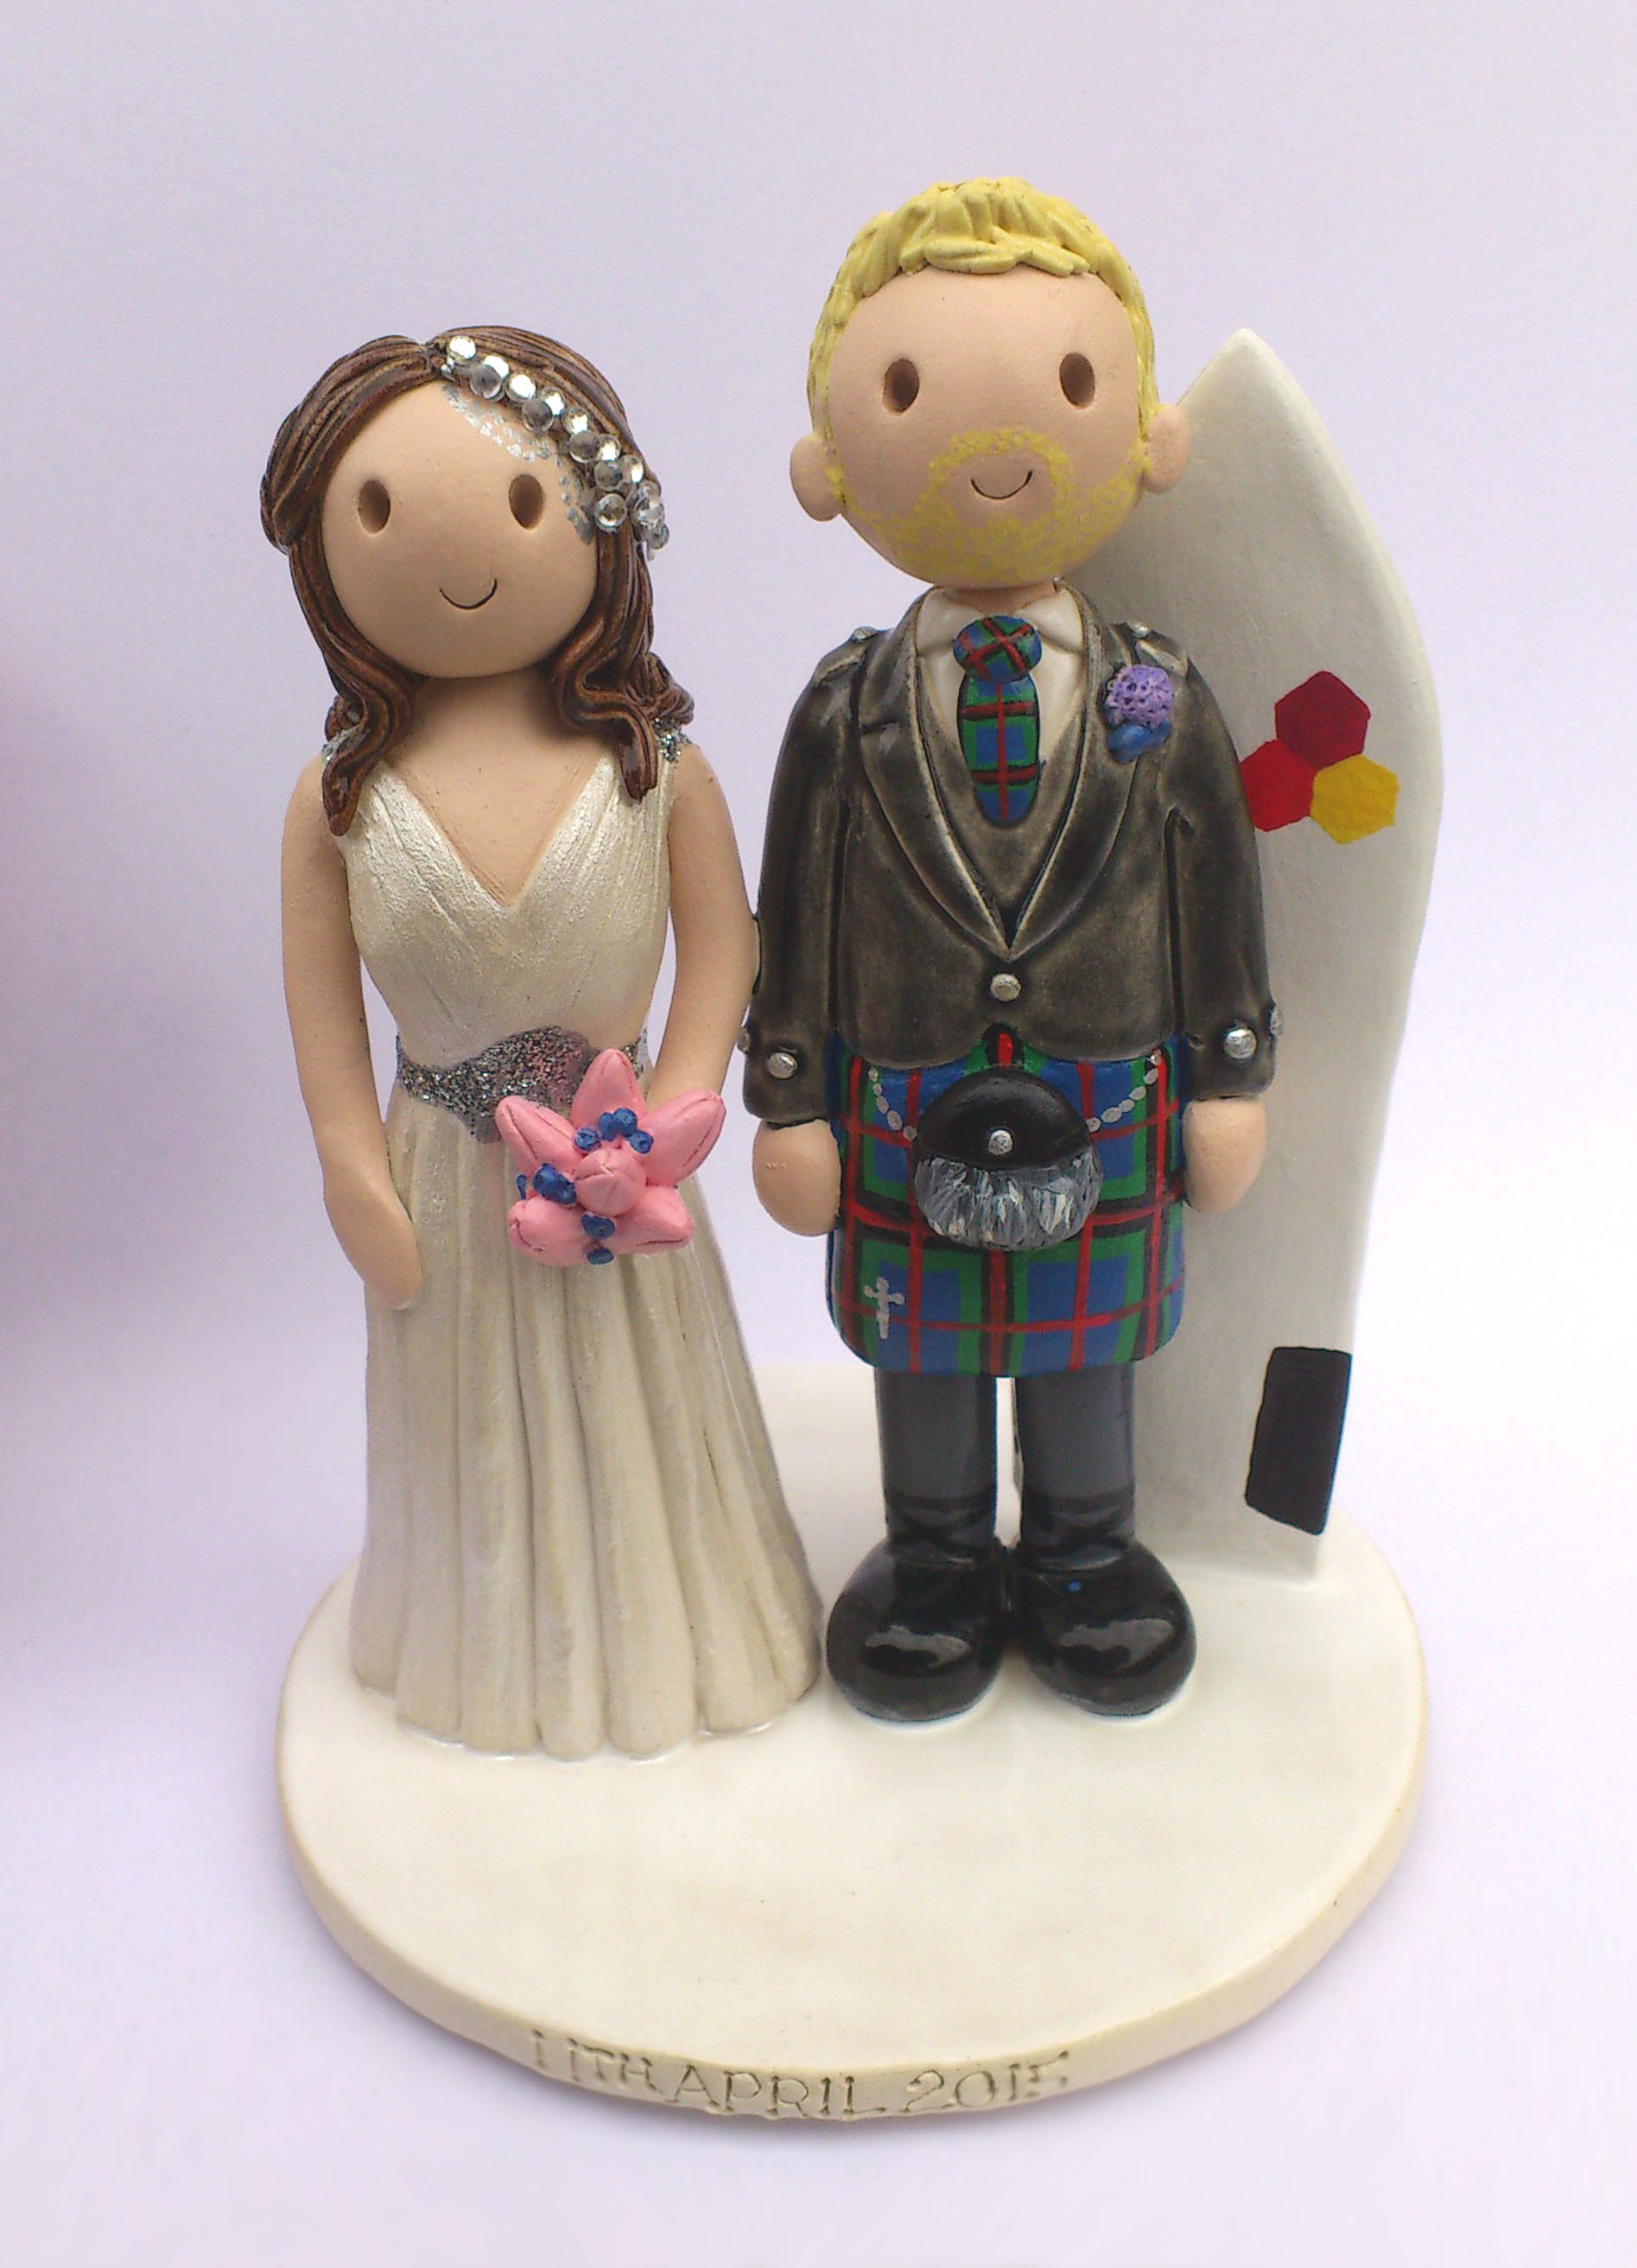 Personalised Clay Wedding Cake Toppers